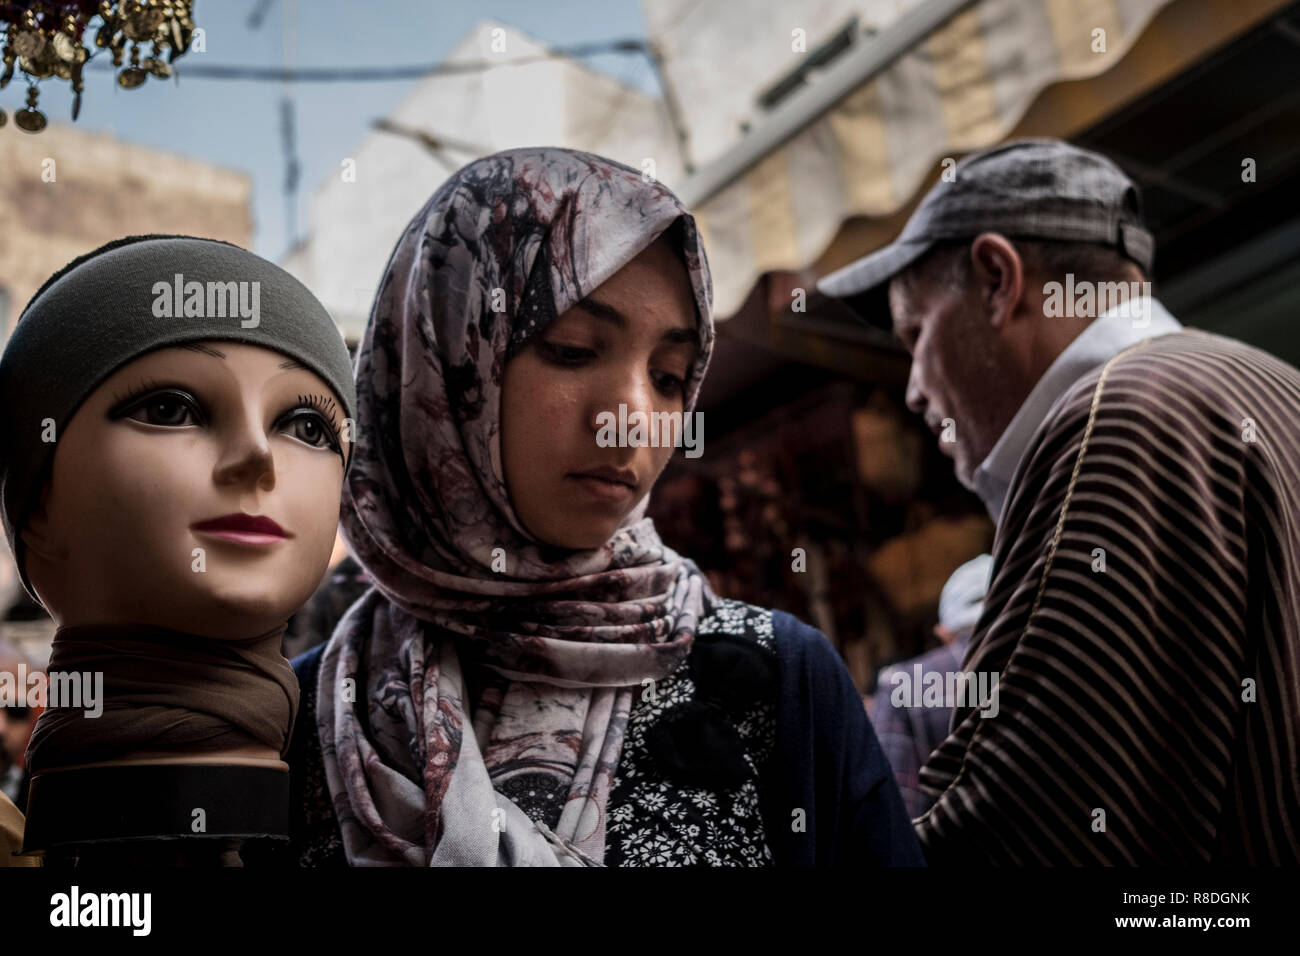 Rabat, Morocco - 24 September 2017: Woman with an hijab passing by a shop selling hijabs - Stock Image